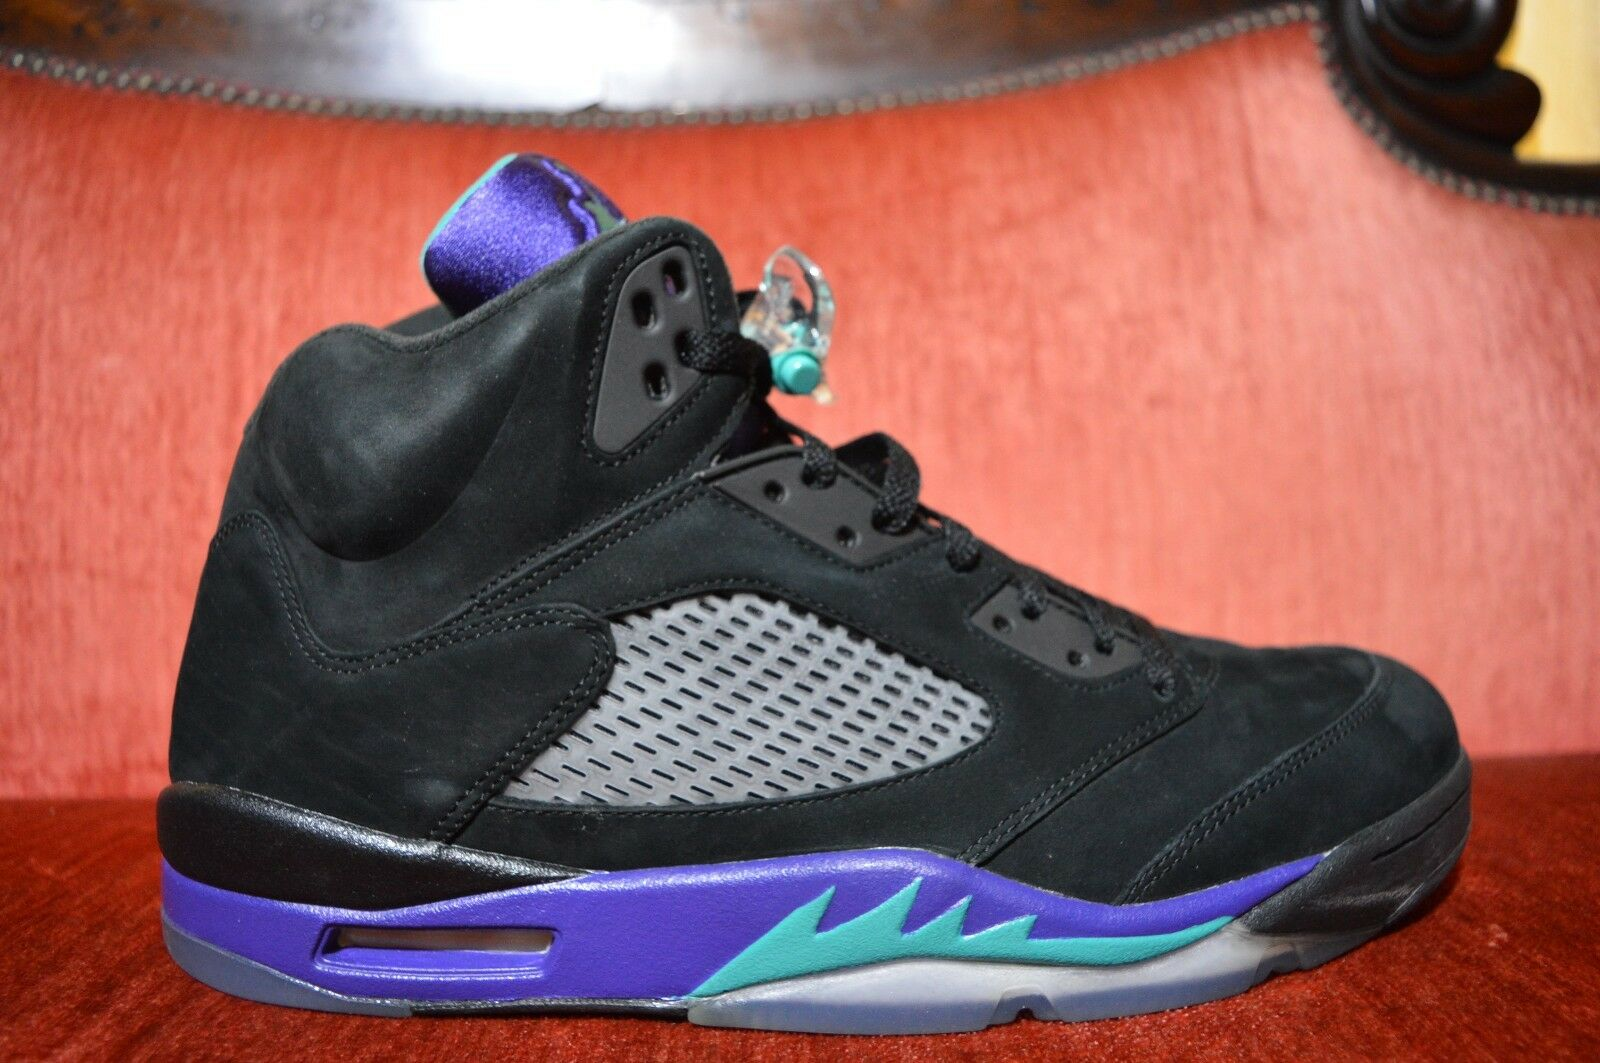 NEW Nike Air Jordan 5 V BLACK GRAPE 2013 size 13 136027 007 Purple Icy